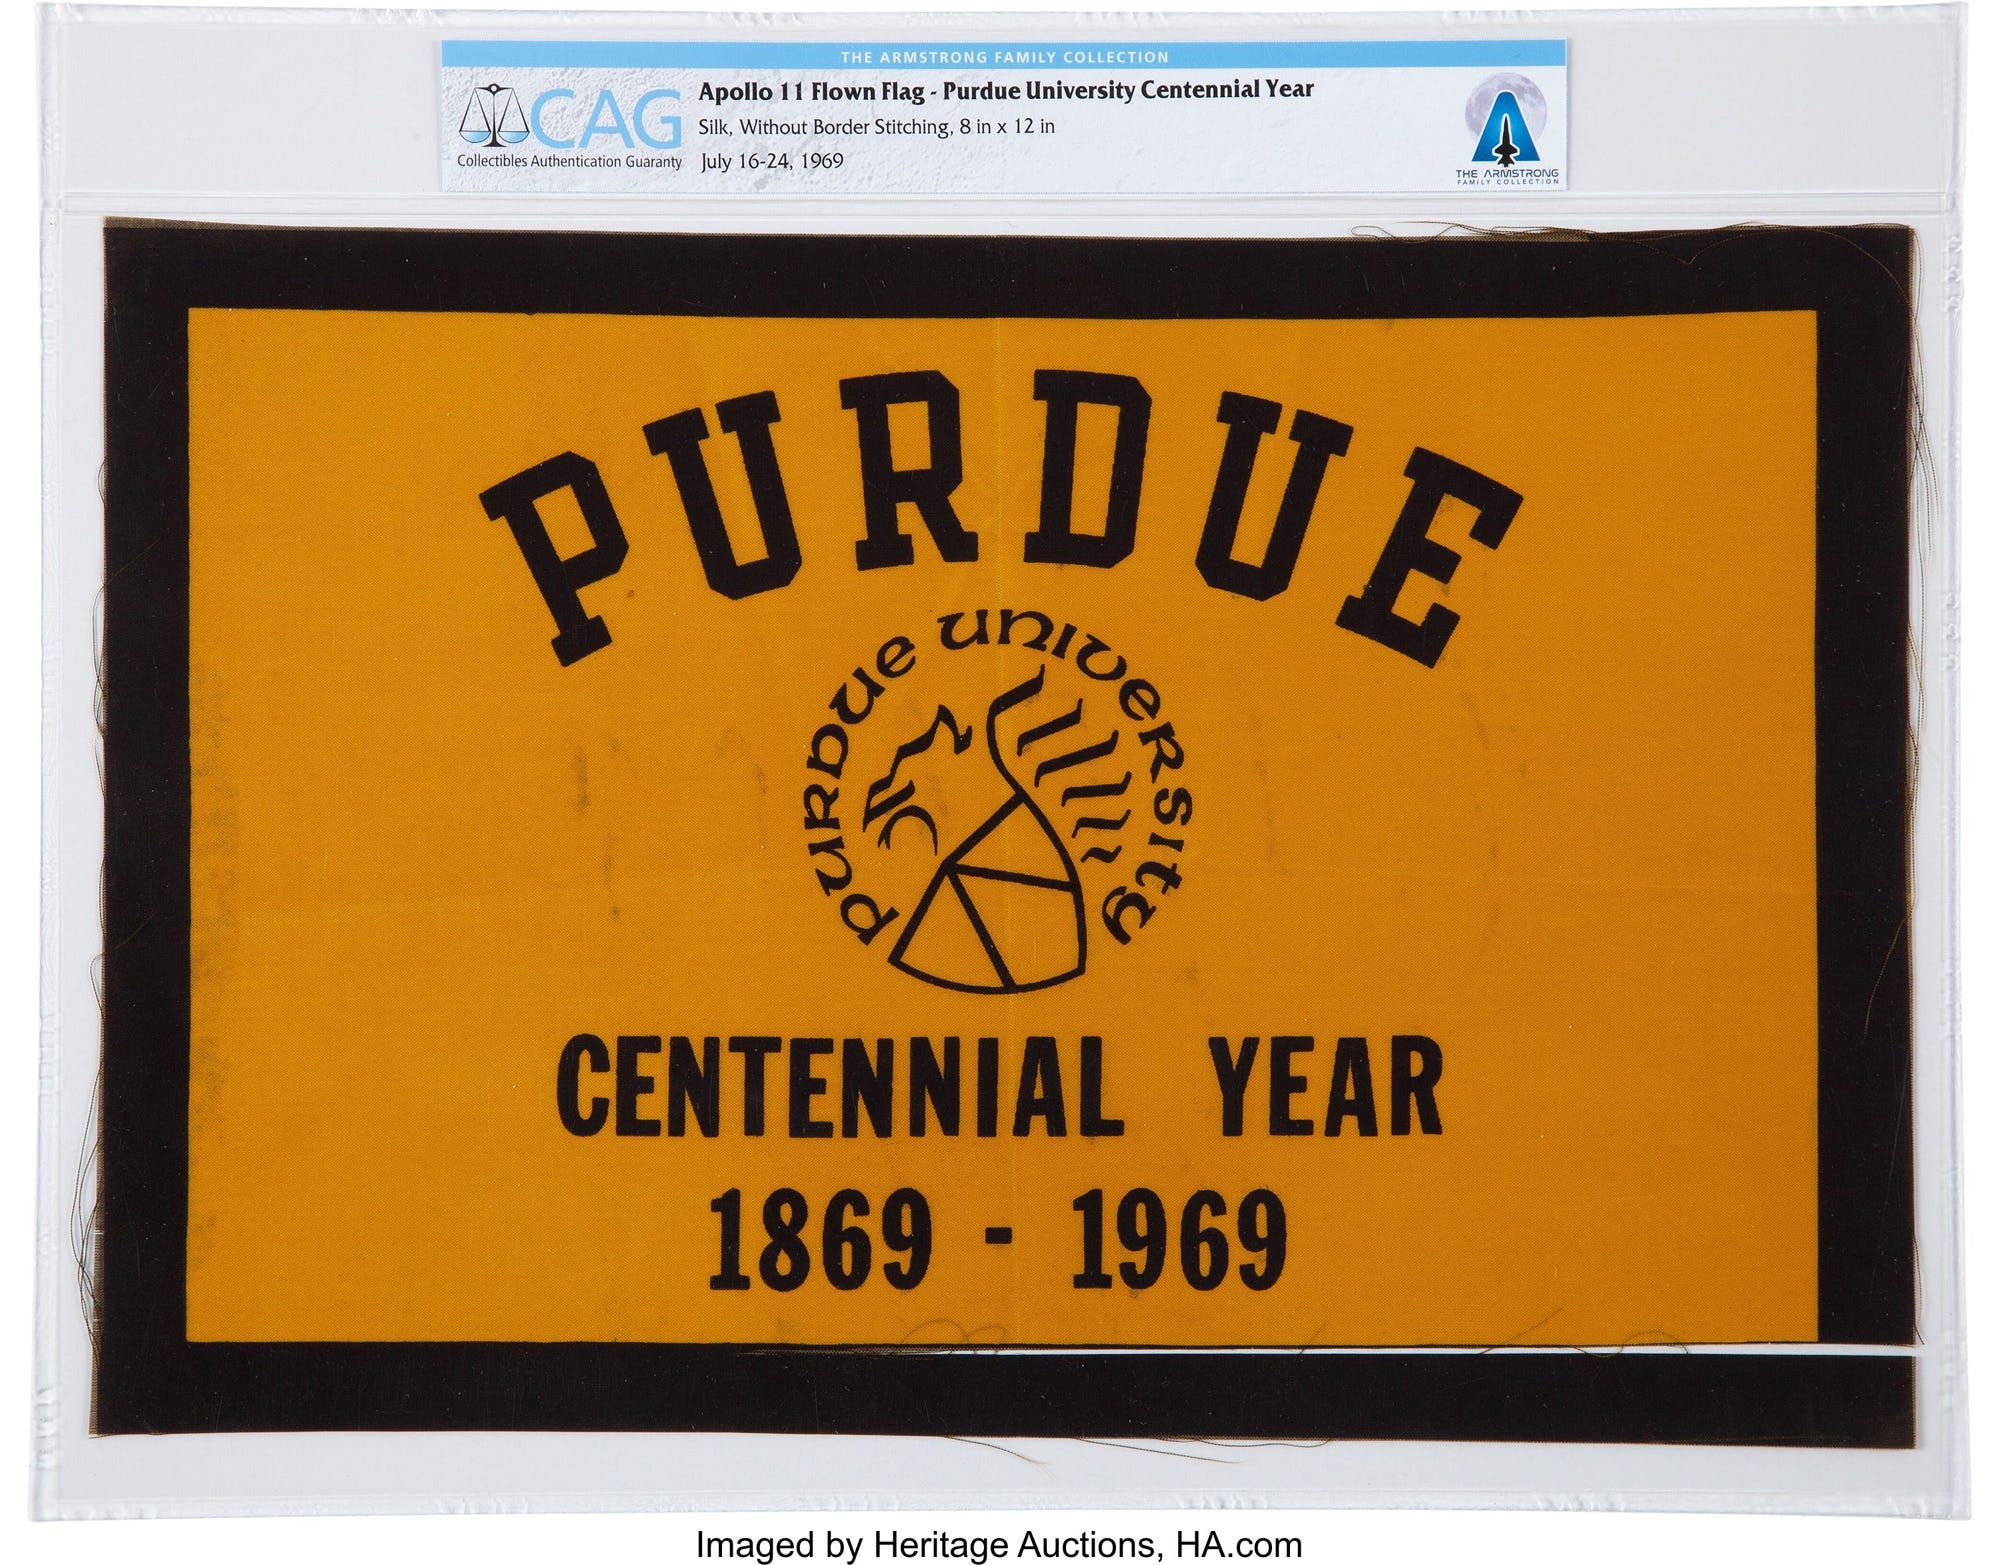 A Purdue Centennial flag on the Apollo 11 mission to the moon is among more than 2,000 items from the Armstrong family collection by Heritage Auctions, starting in October. Heritage AuctionsA Purdue Centennial flag that went with Neil Armstrong on the Apollo 11 mission to the moon is among more than 2,000 items from the Armstrong family collection by Heritage Auctions, starting in October.